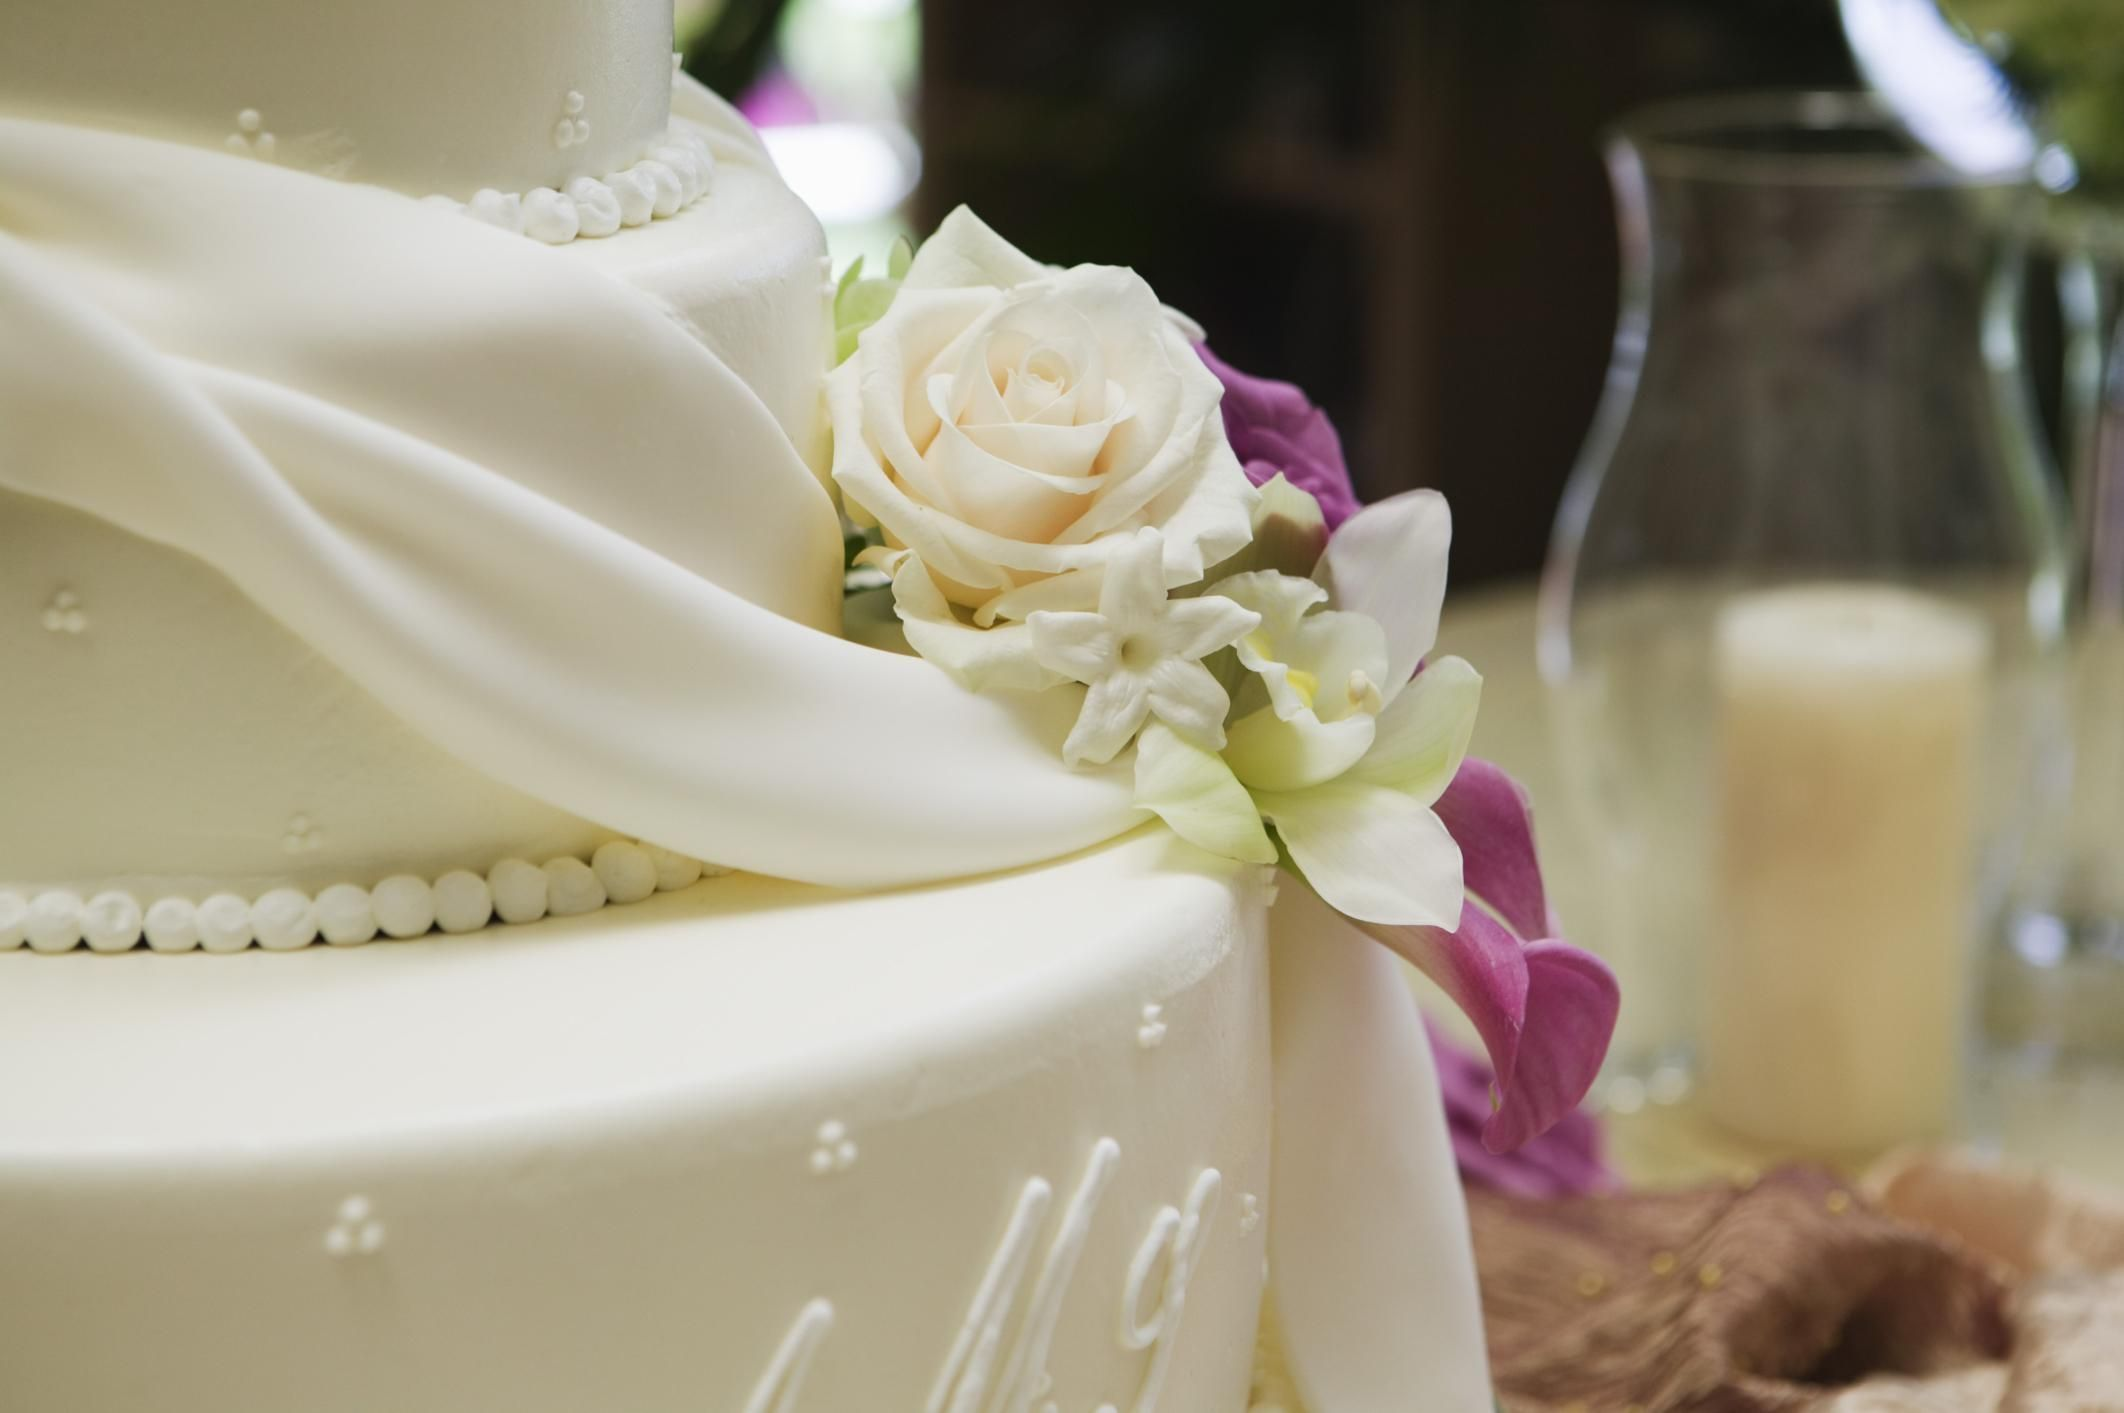 9 simple steps to assembling a tiered cake stacking a